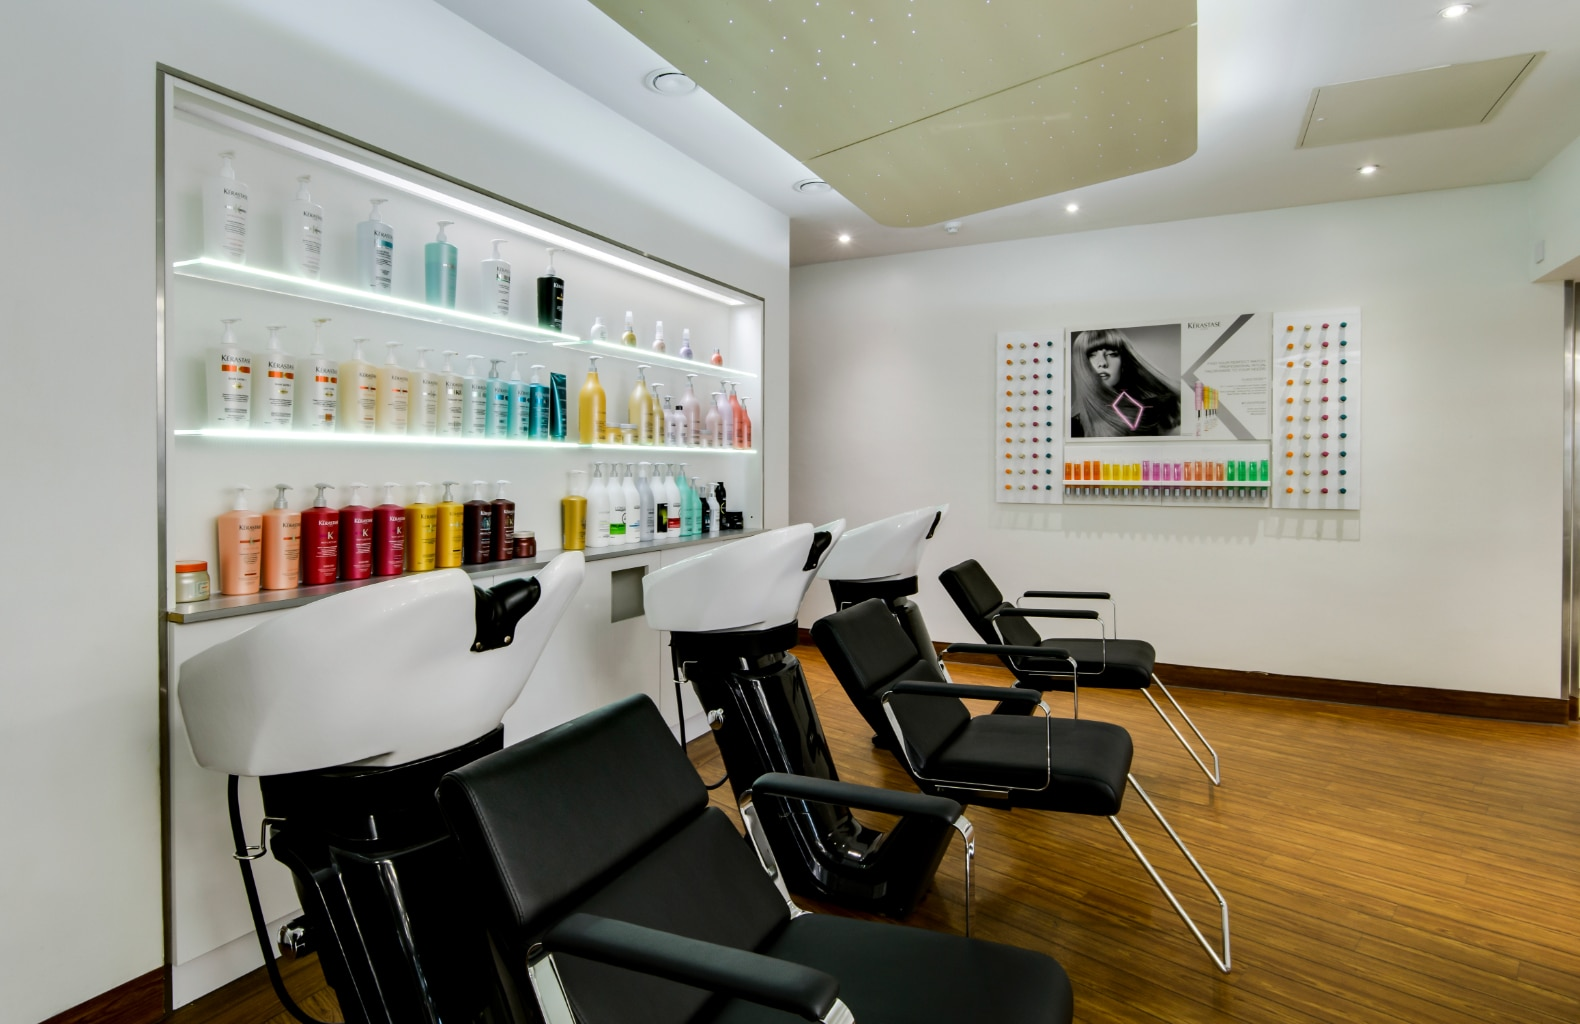 Vanilla Room Hair & Beauty Salon Design